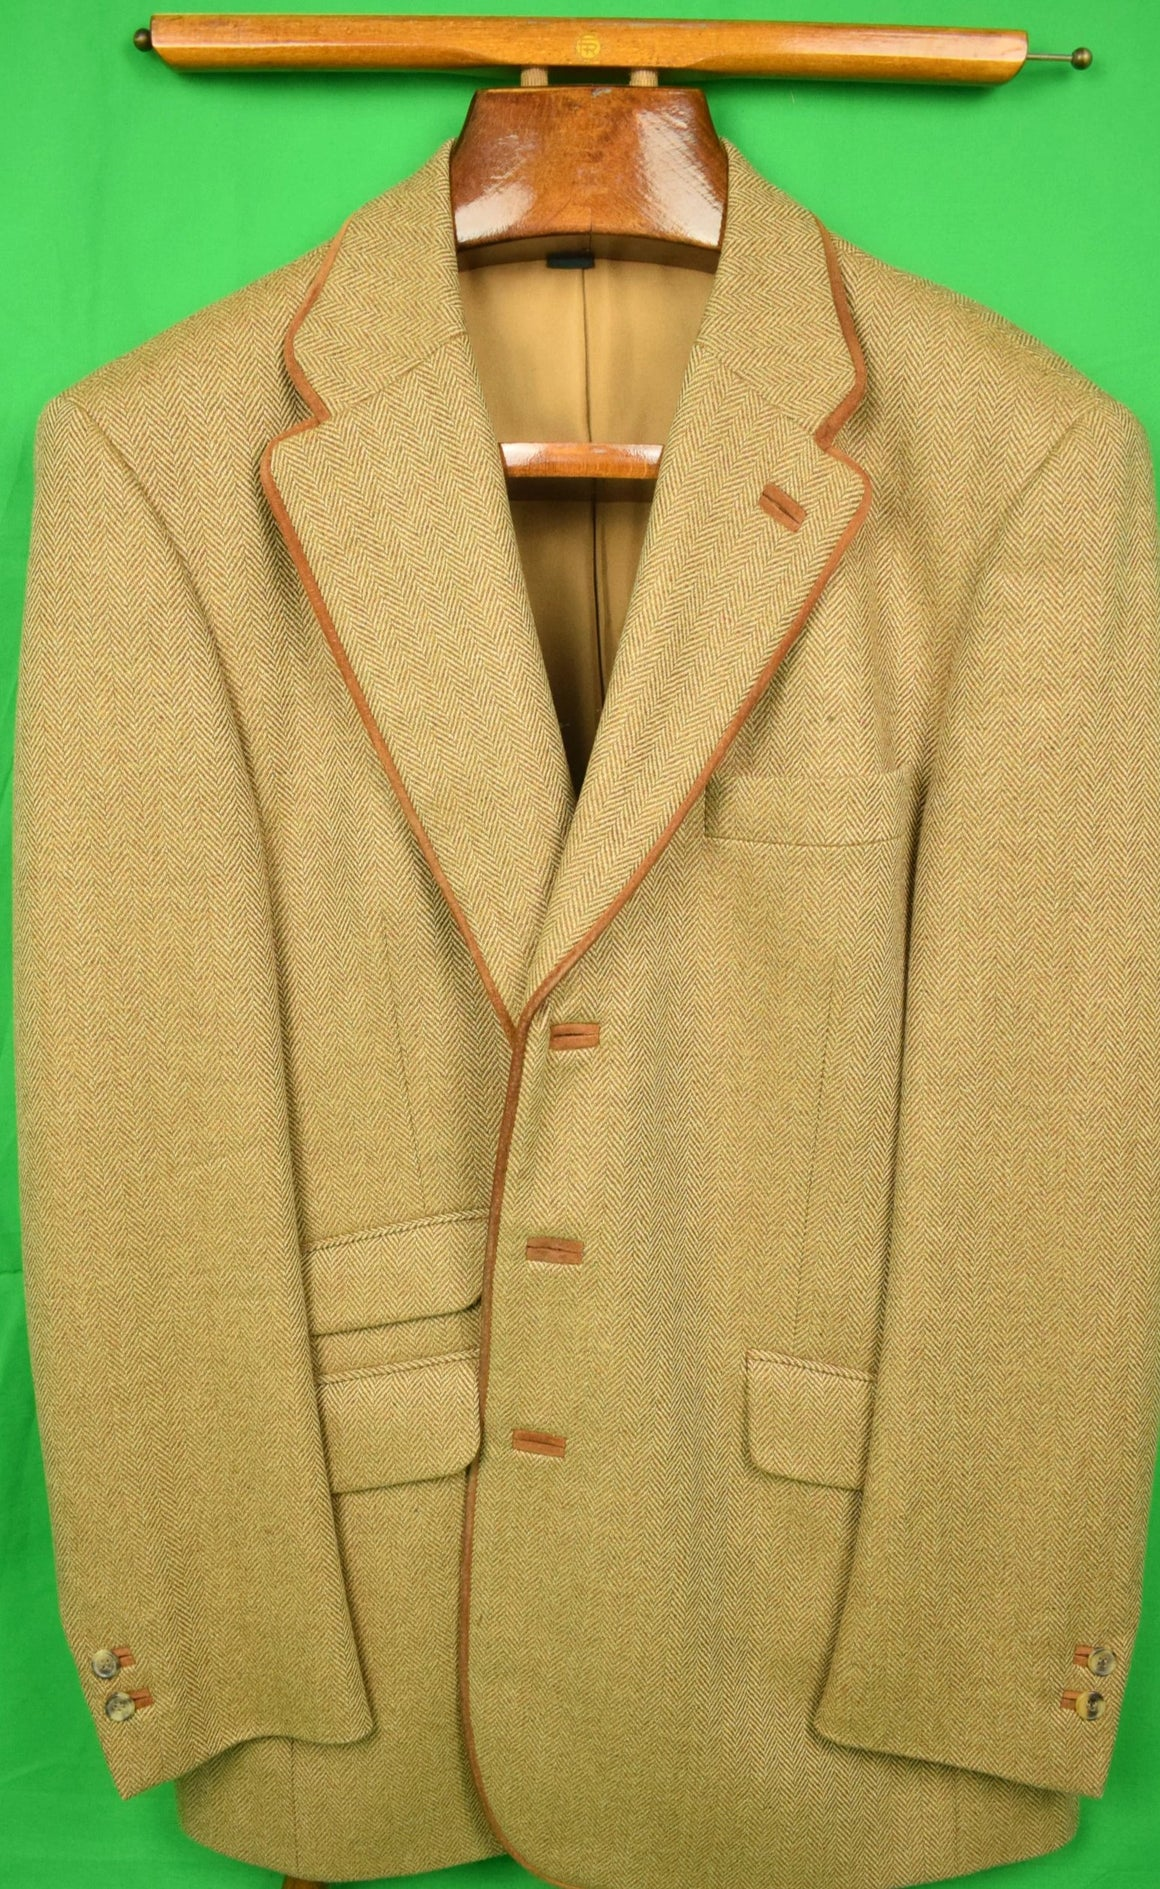 'Holland & Holland Herringbone Tweed Shooting Jacket' Sz: 44L